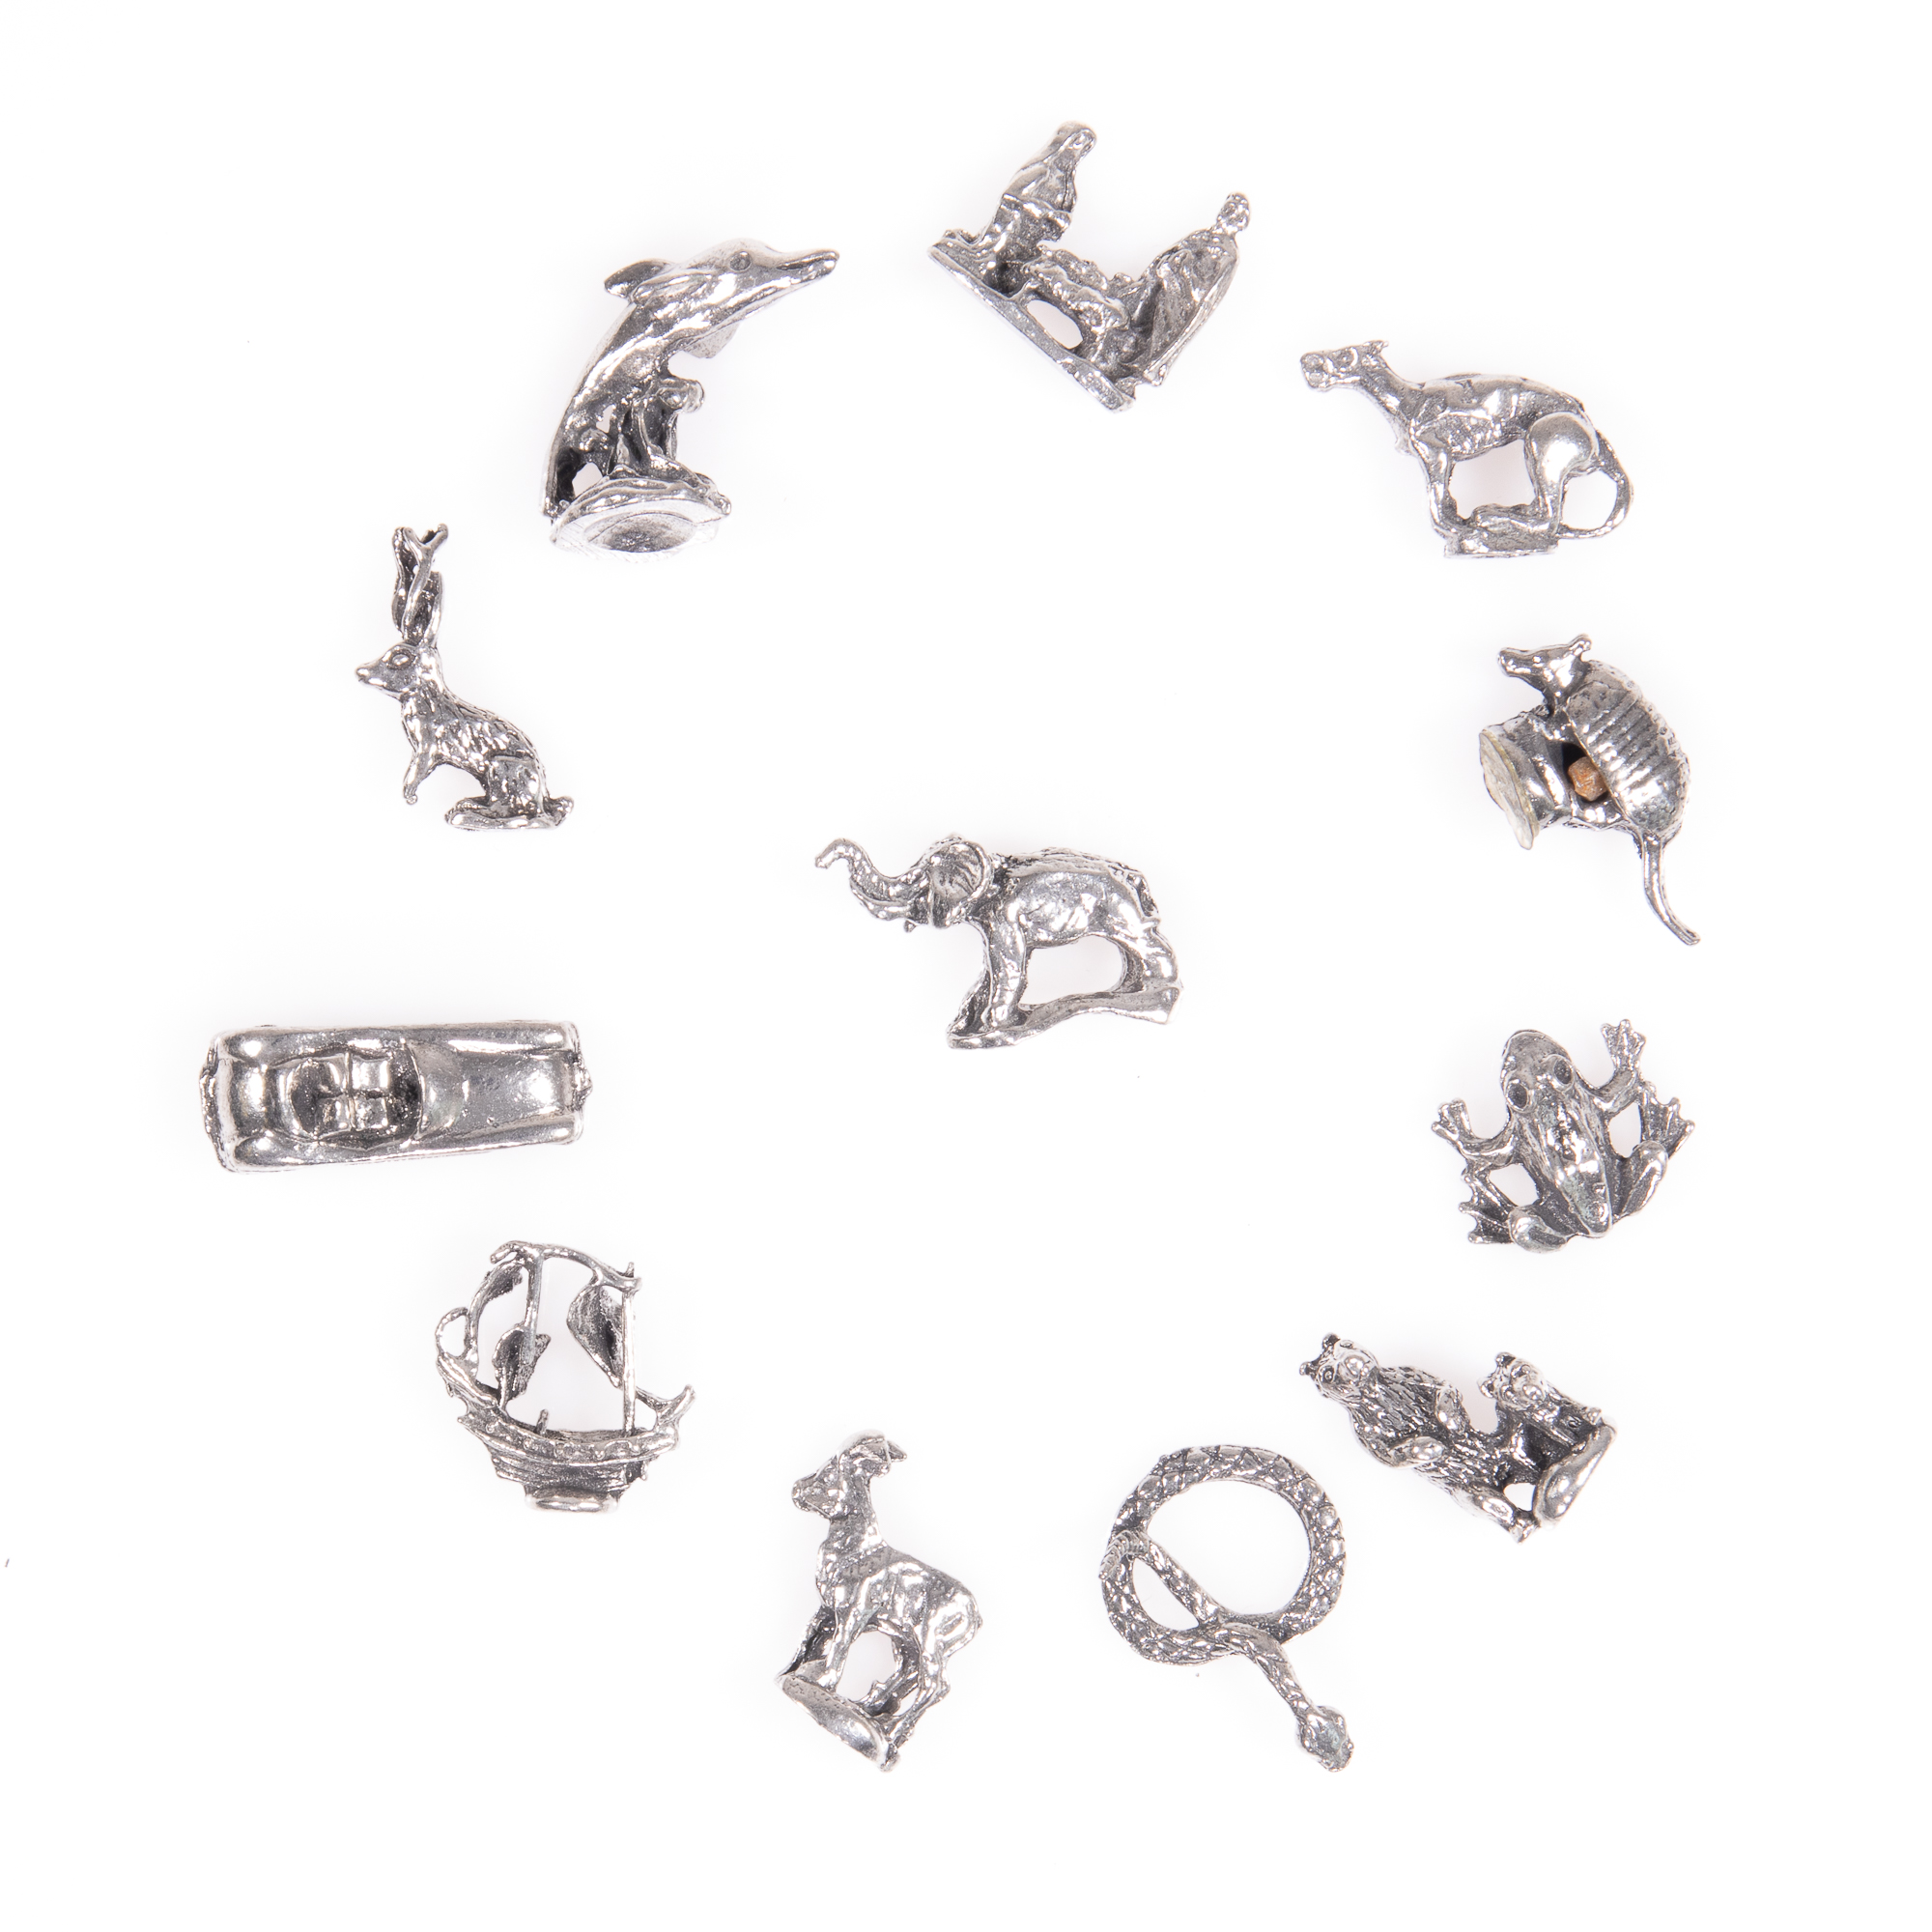 Selection of 12x Silver Novelty Charms - Image 2 of 6